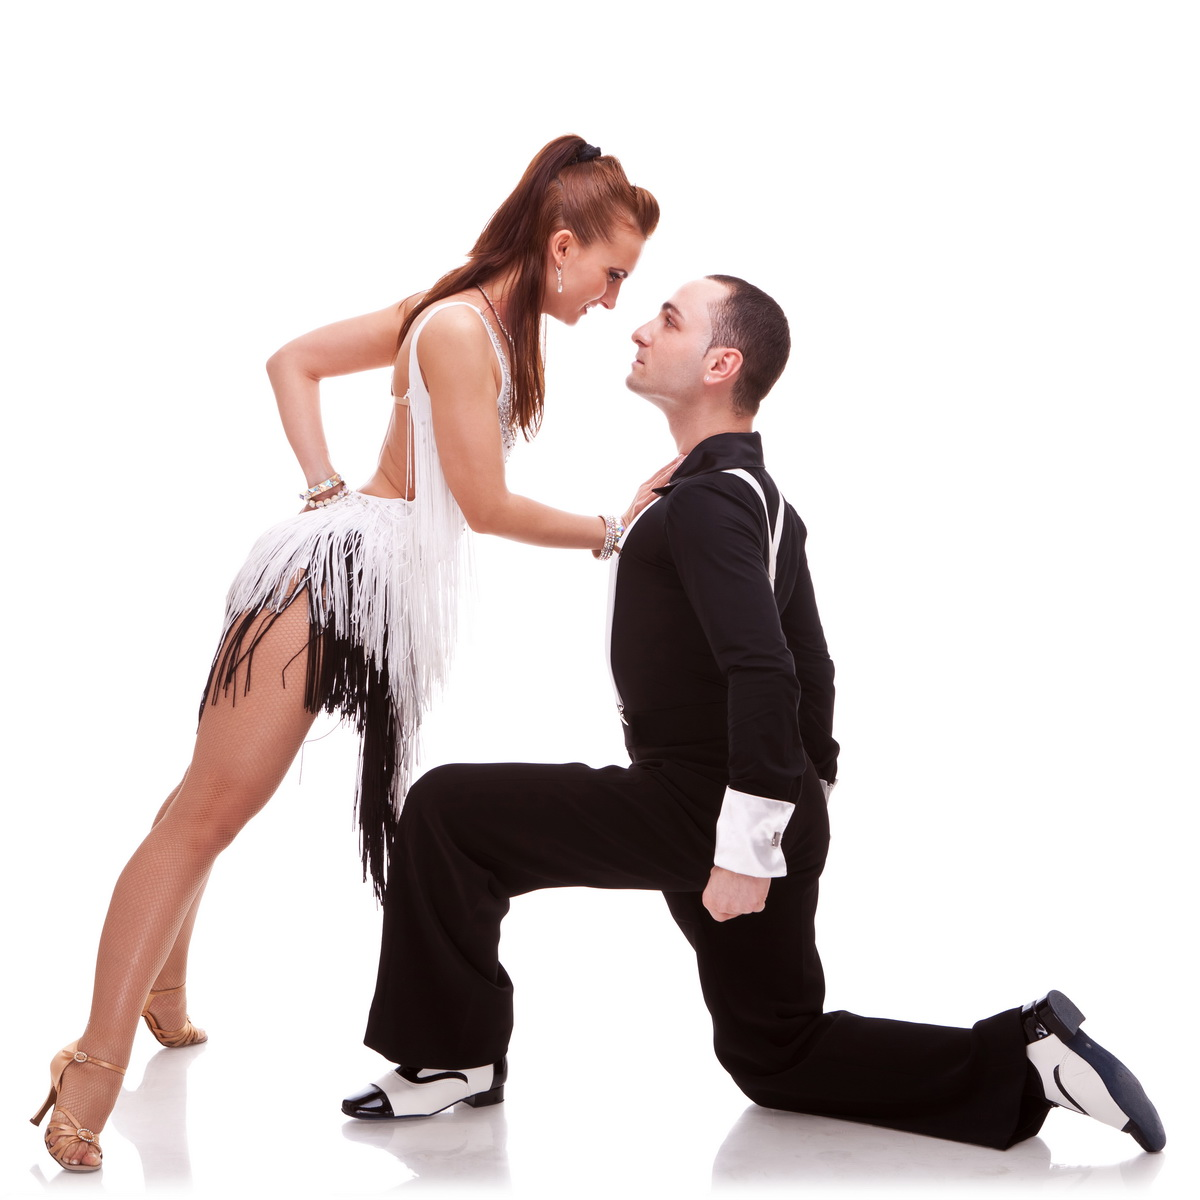 woman dancer leaning against her dance partner, in a sensual pose. passionate salsa dancing couple on white background